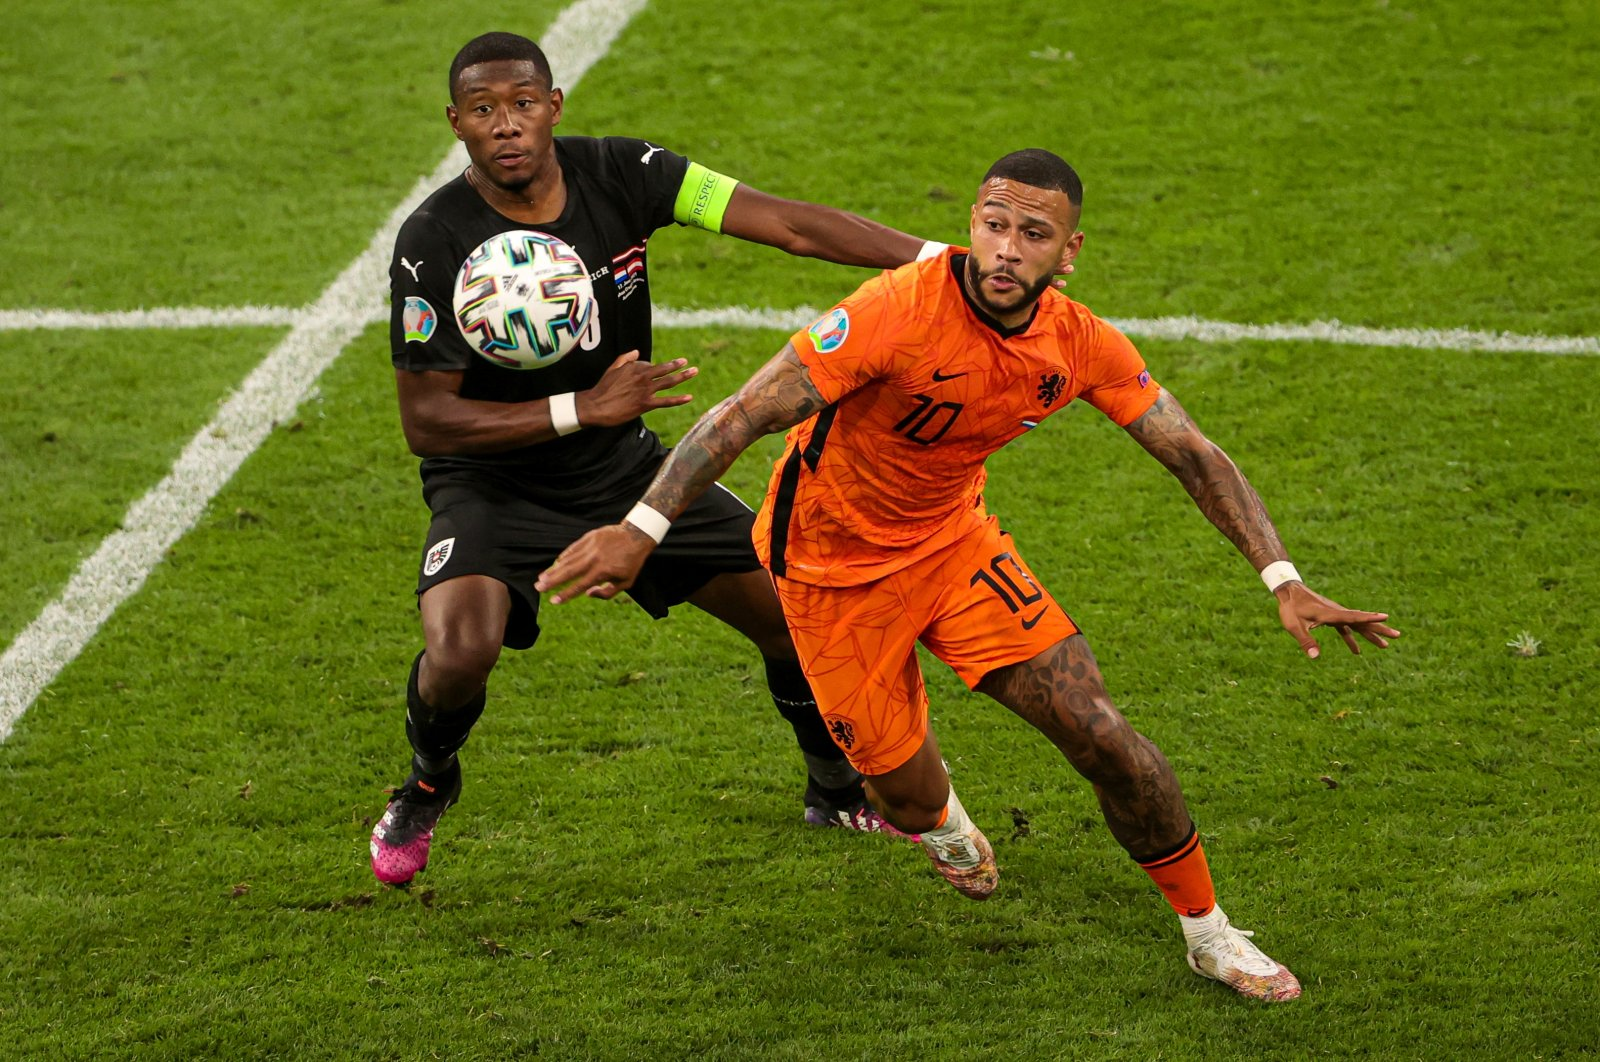 Dutch forward Memphis Depay (R) vies for the ball during Euro 2020 Group C match against Austria, at Amsterdam Arena in the Netherlands, June 18, 2021. (AA Photo)